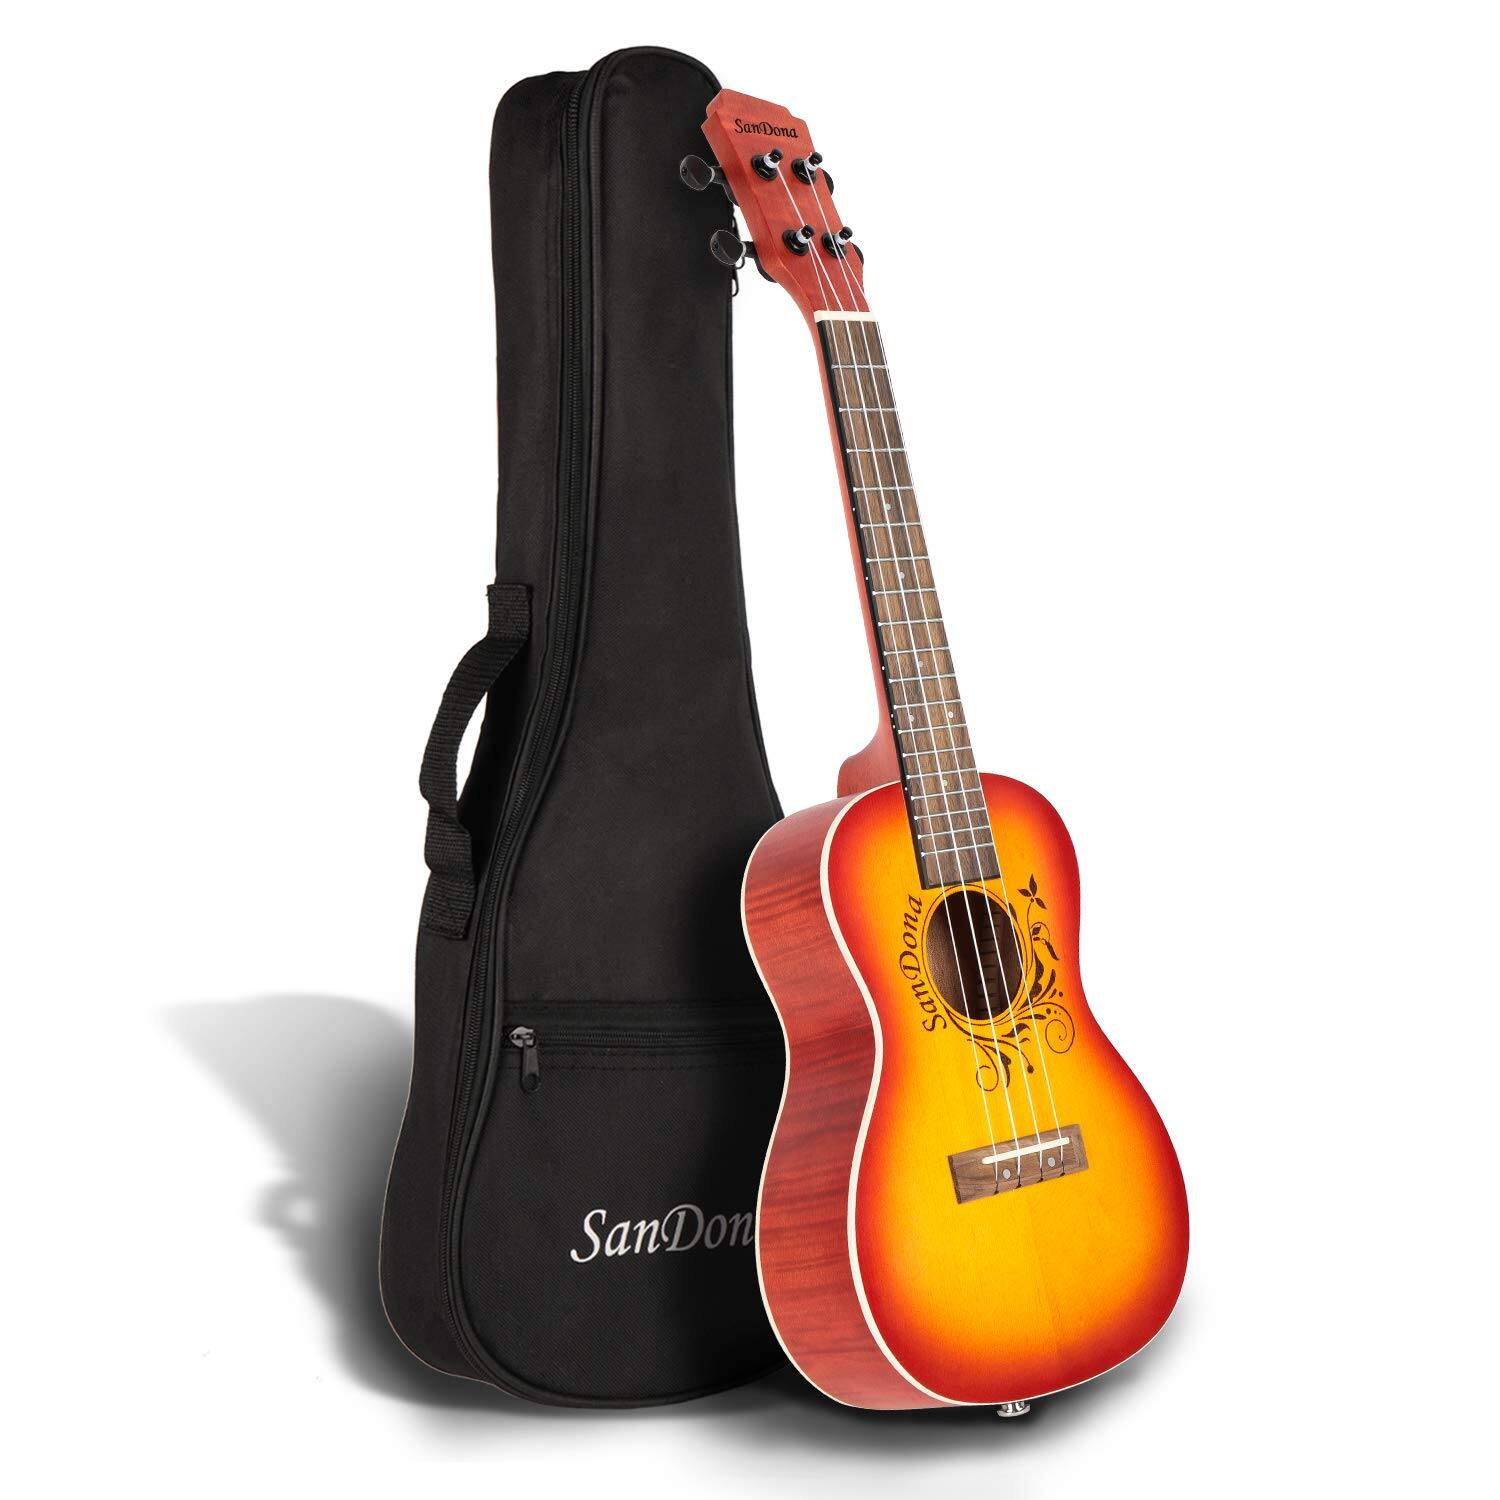 SANDONA Acoustic Electric Concert Ukulele 24 Inch (4 colors) $43.67 + FREE Prime Shipping